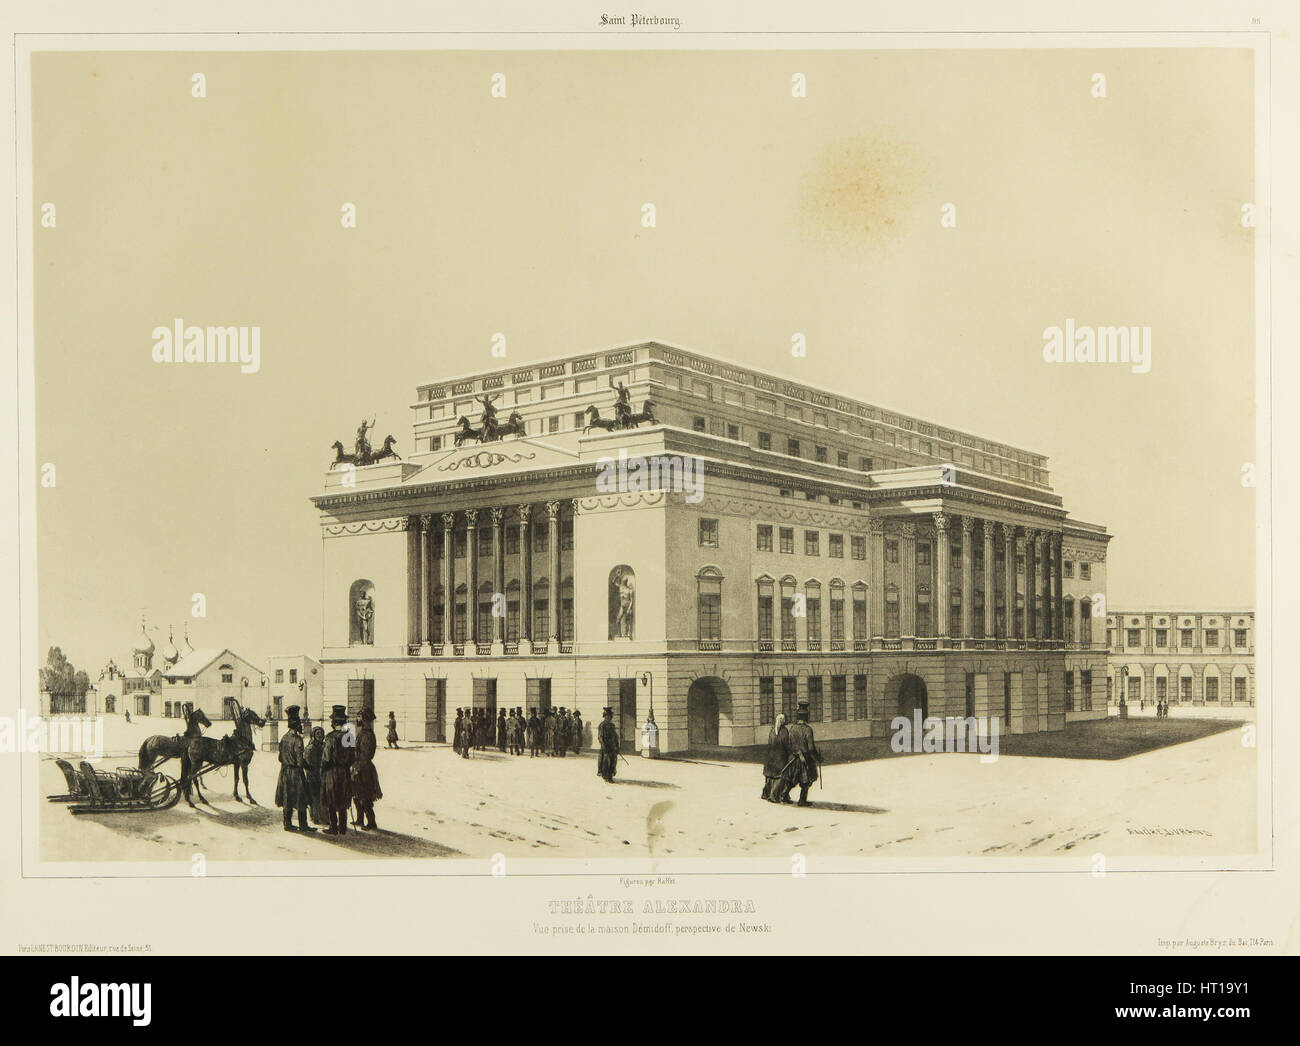 The Alexandrinsky Theatre in Saint Petersburg, c. 1840. Artist: Durand, André (1807-1867) Stock Photo